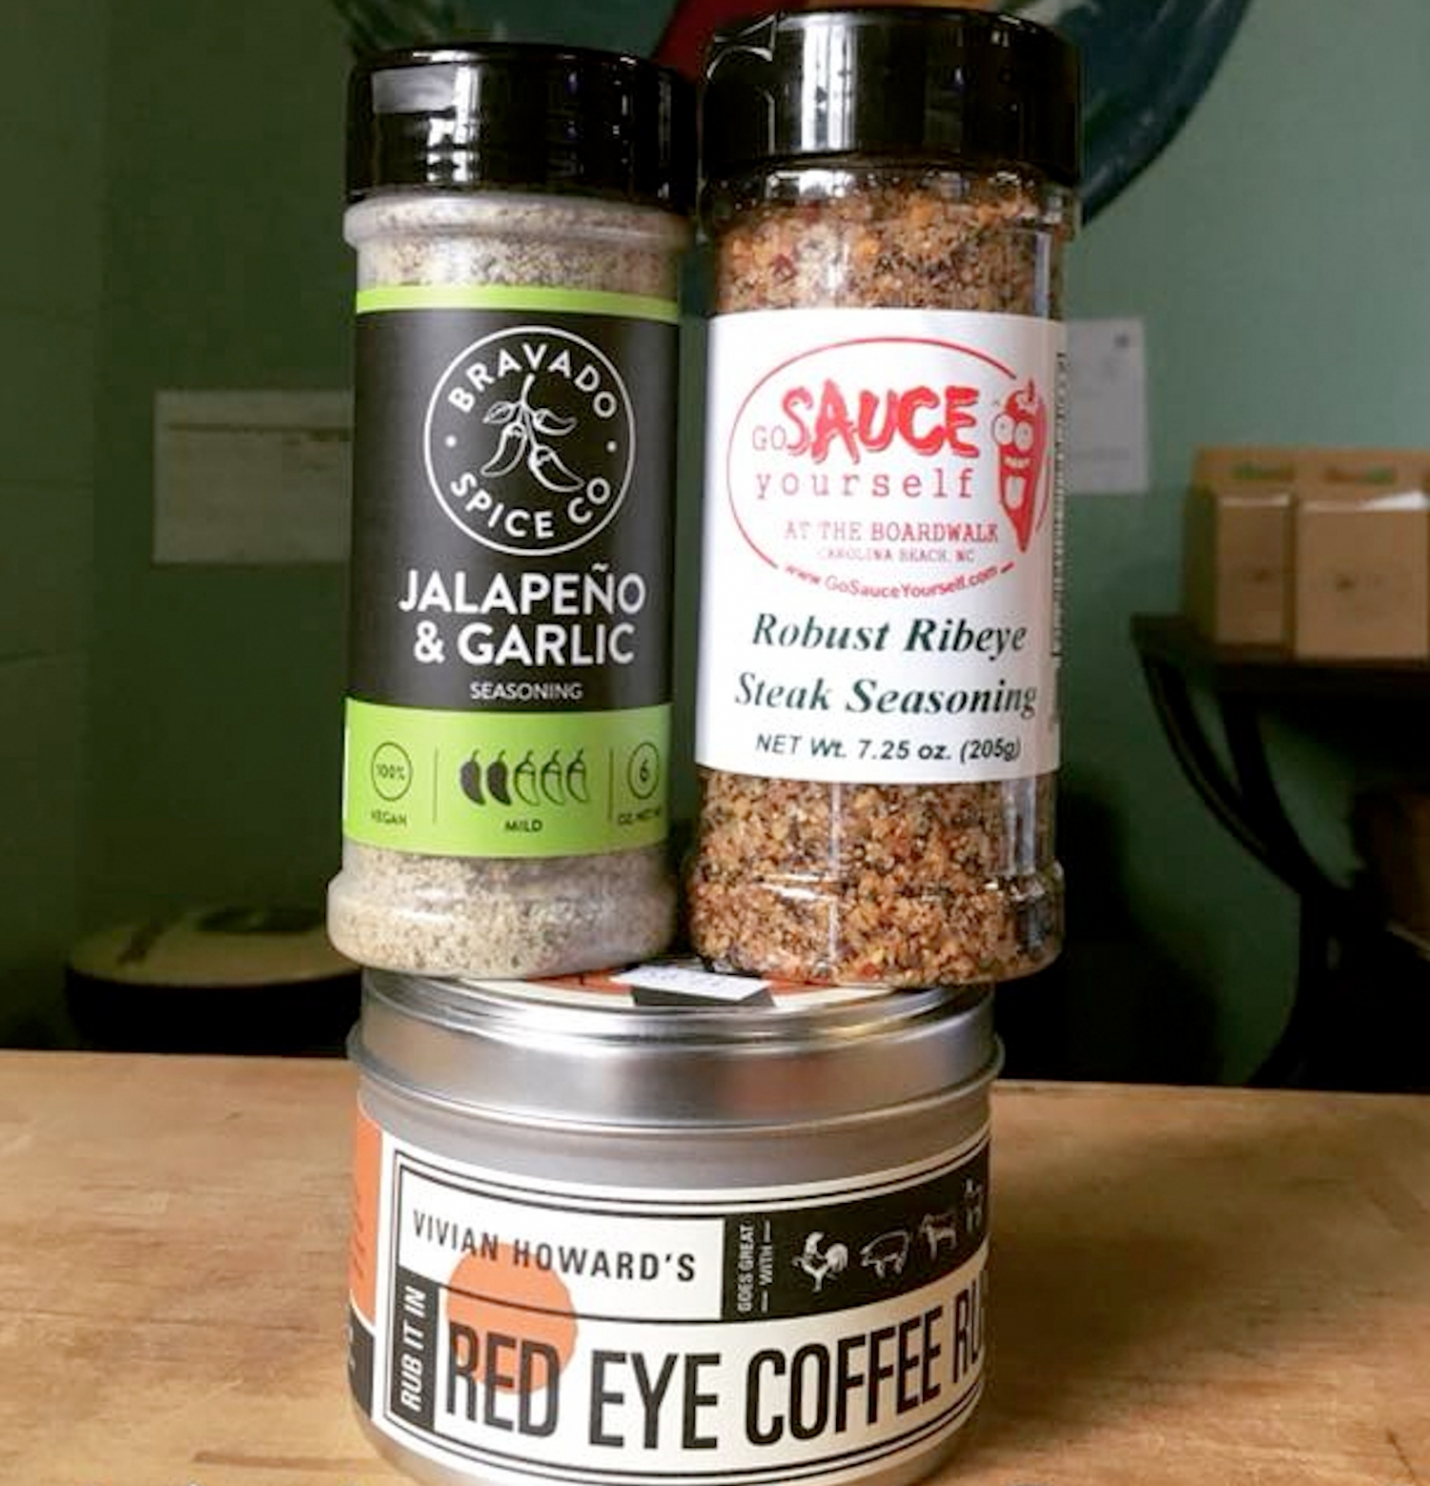 NC Beer And Steak Seasoning at Go Sauce Yourself